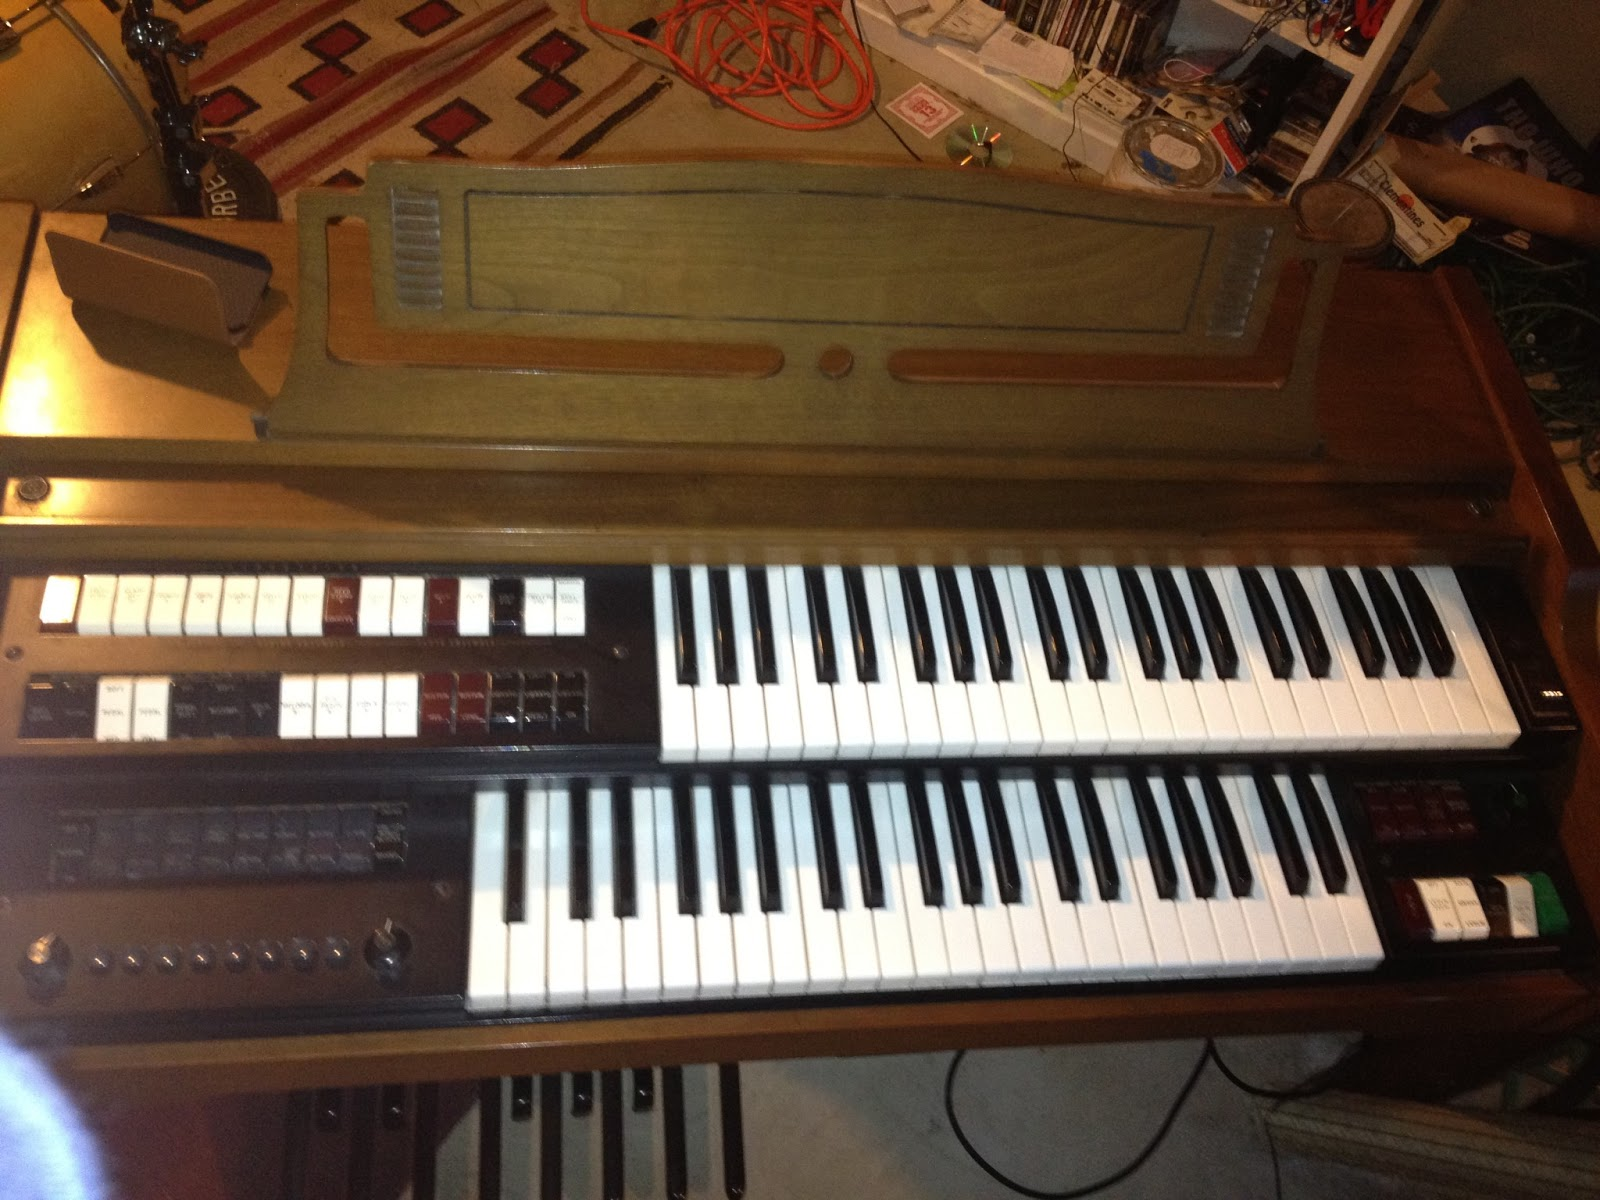 This overhead photo shows the whole organ layout. It is a fairly typical  spinet organ, with two 44-note manuals, a 13-note pedalboard, and an  expression ...